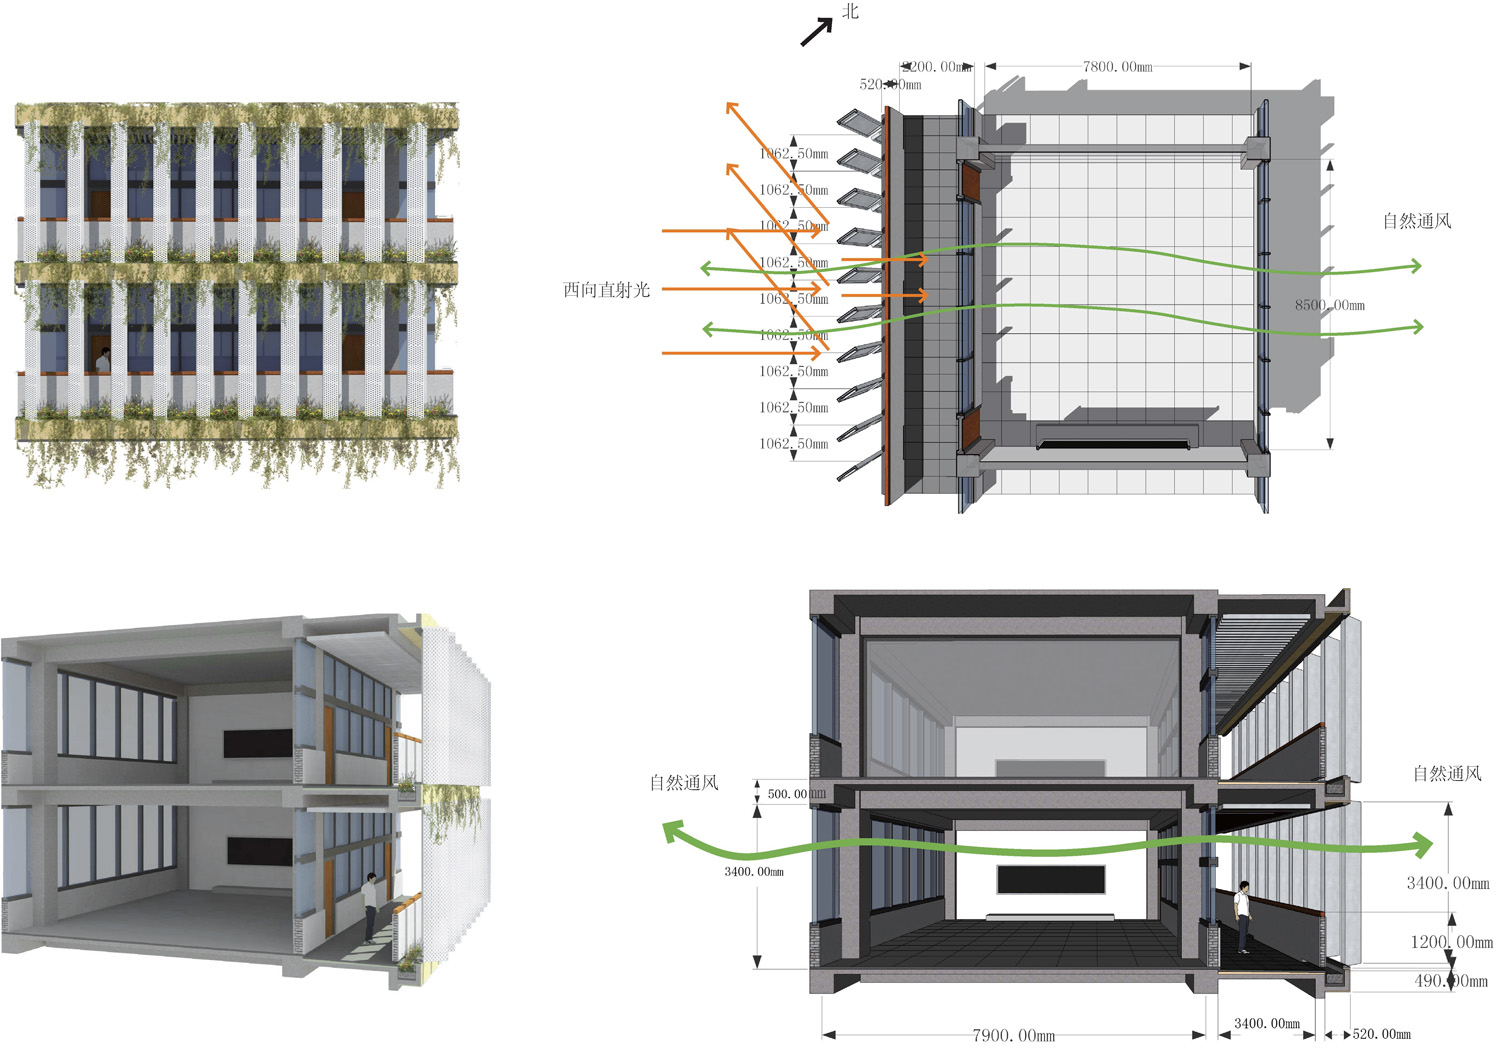 ventilation and shading system analysis